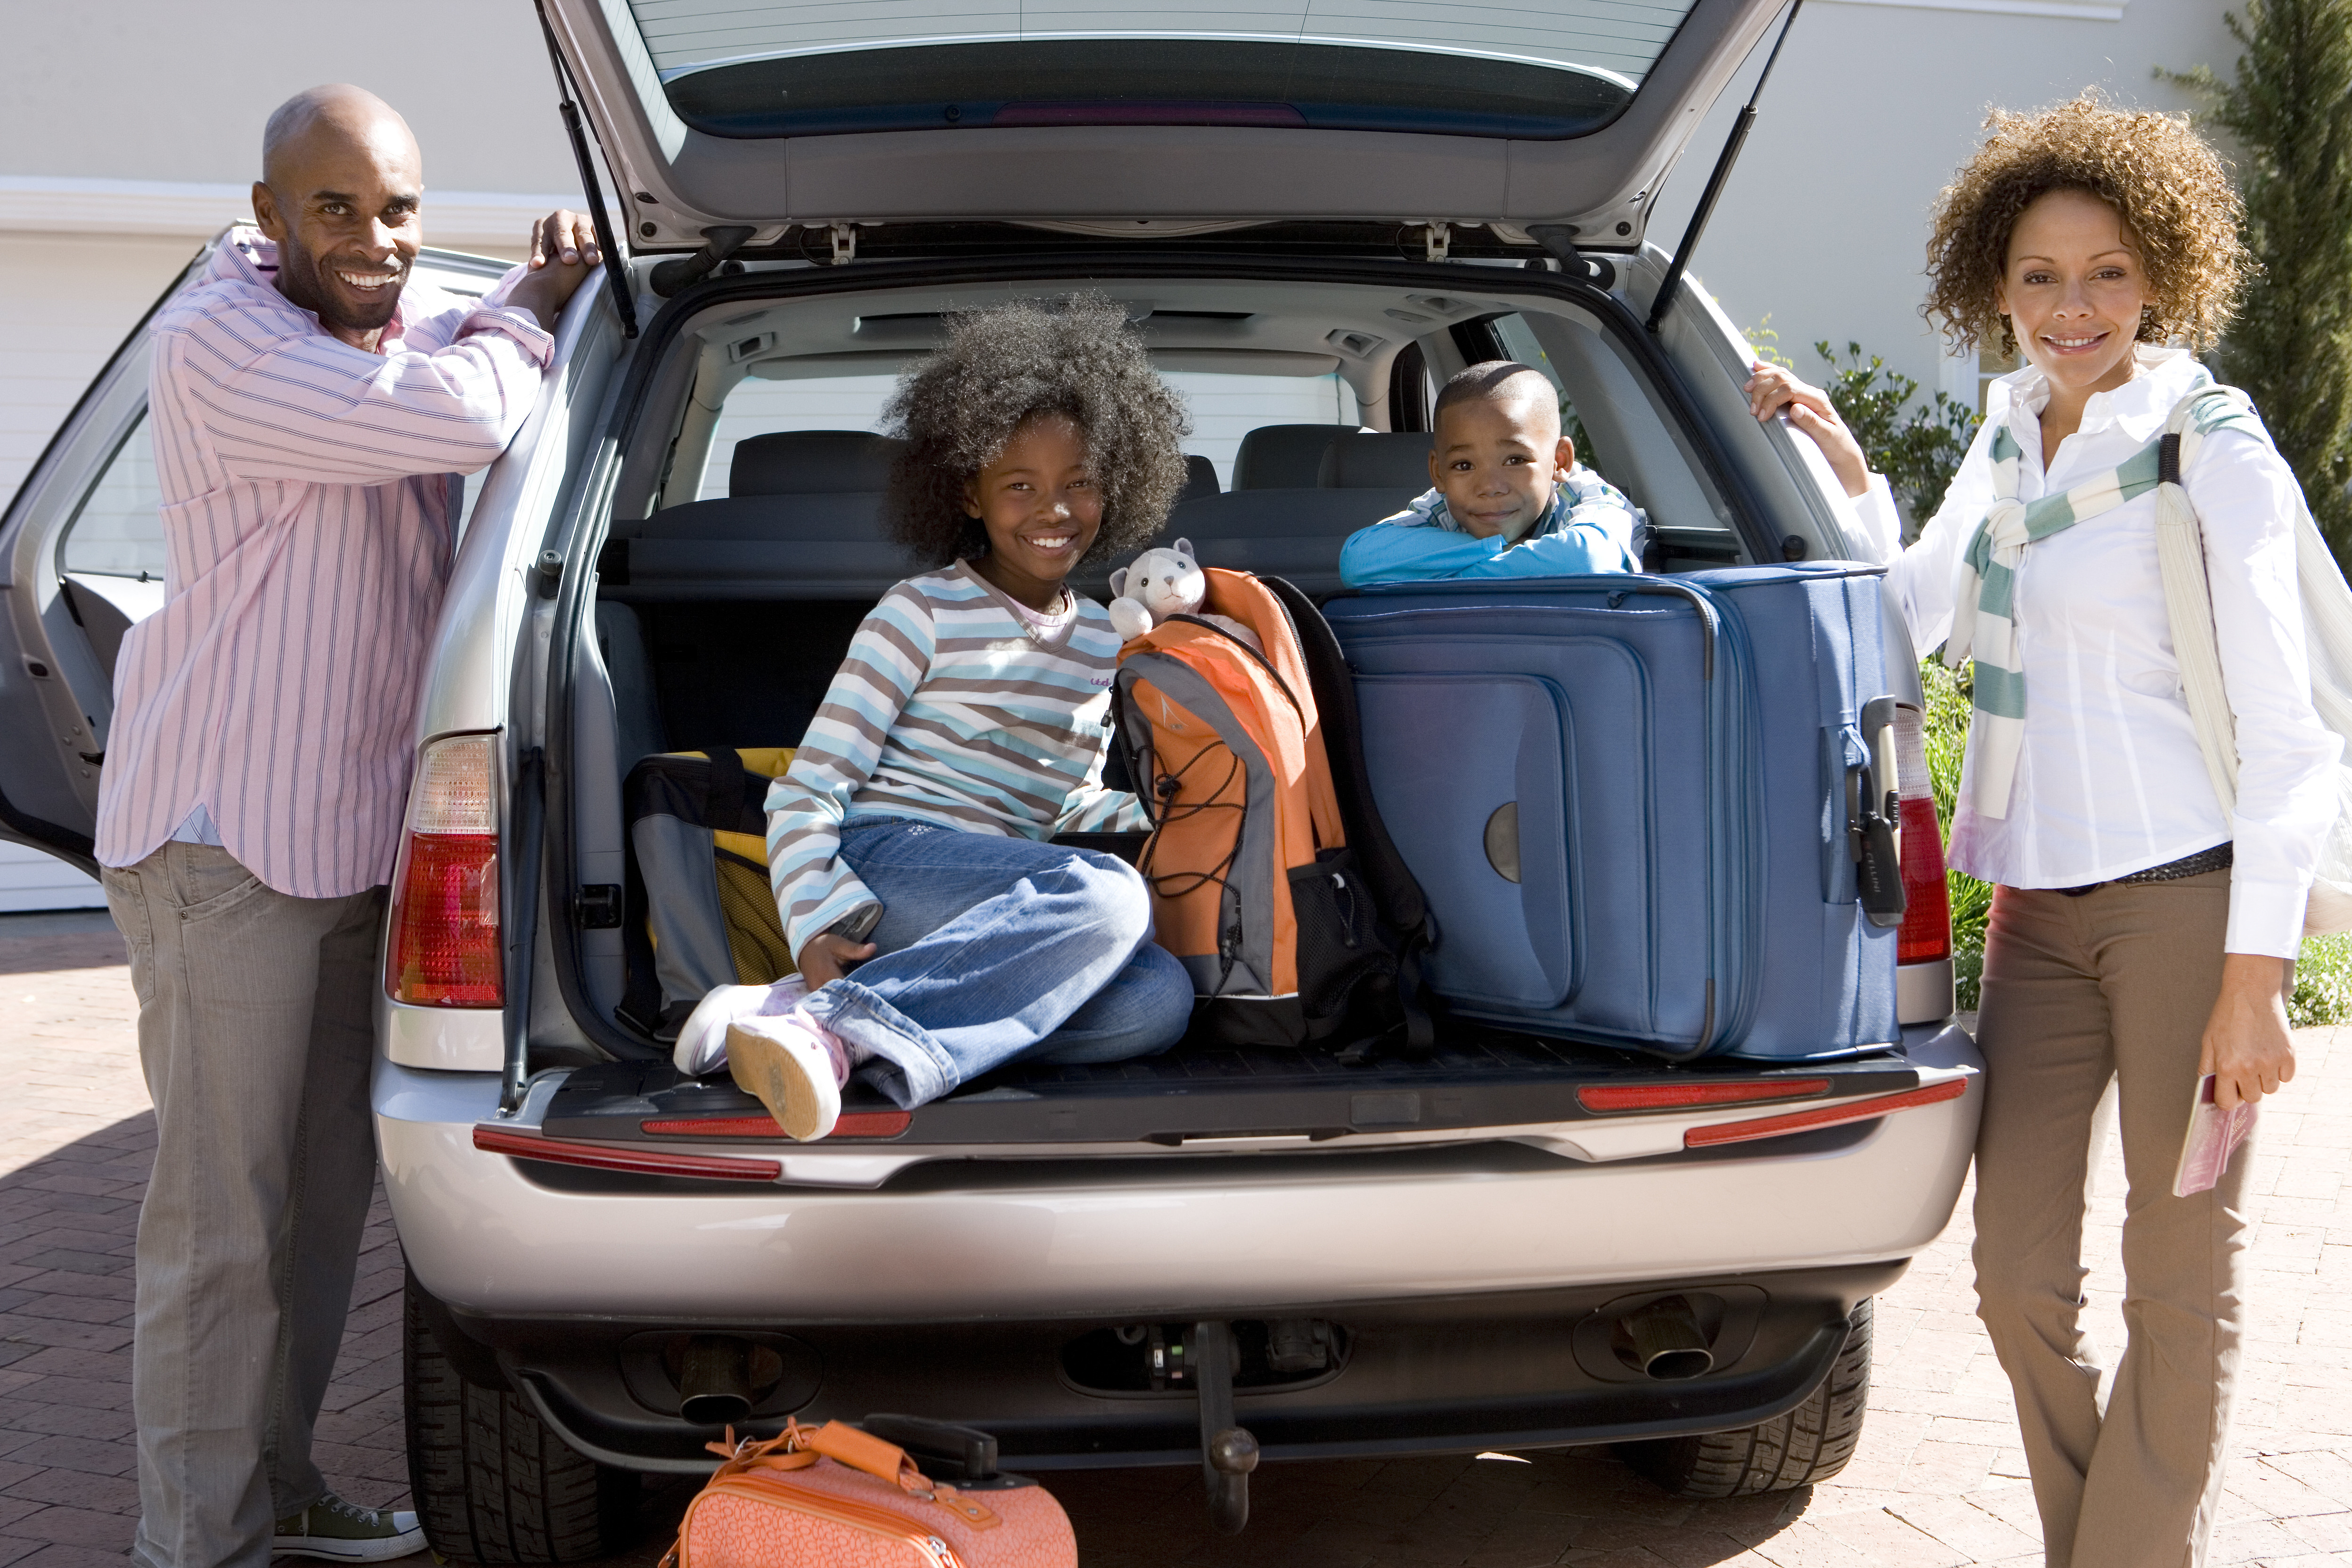 Get there safely: Festive season travel safety tips